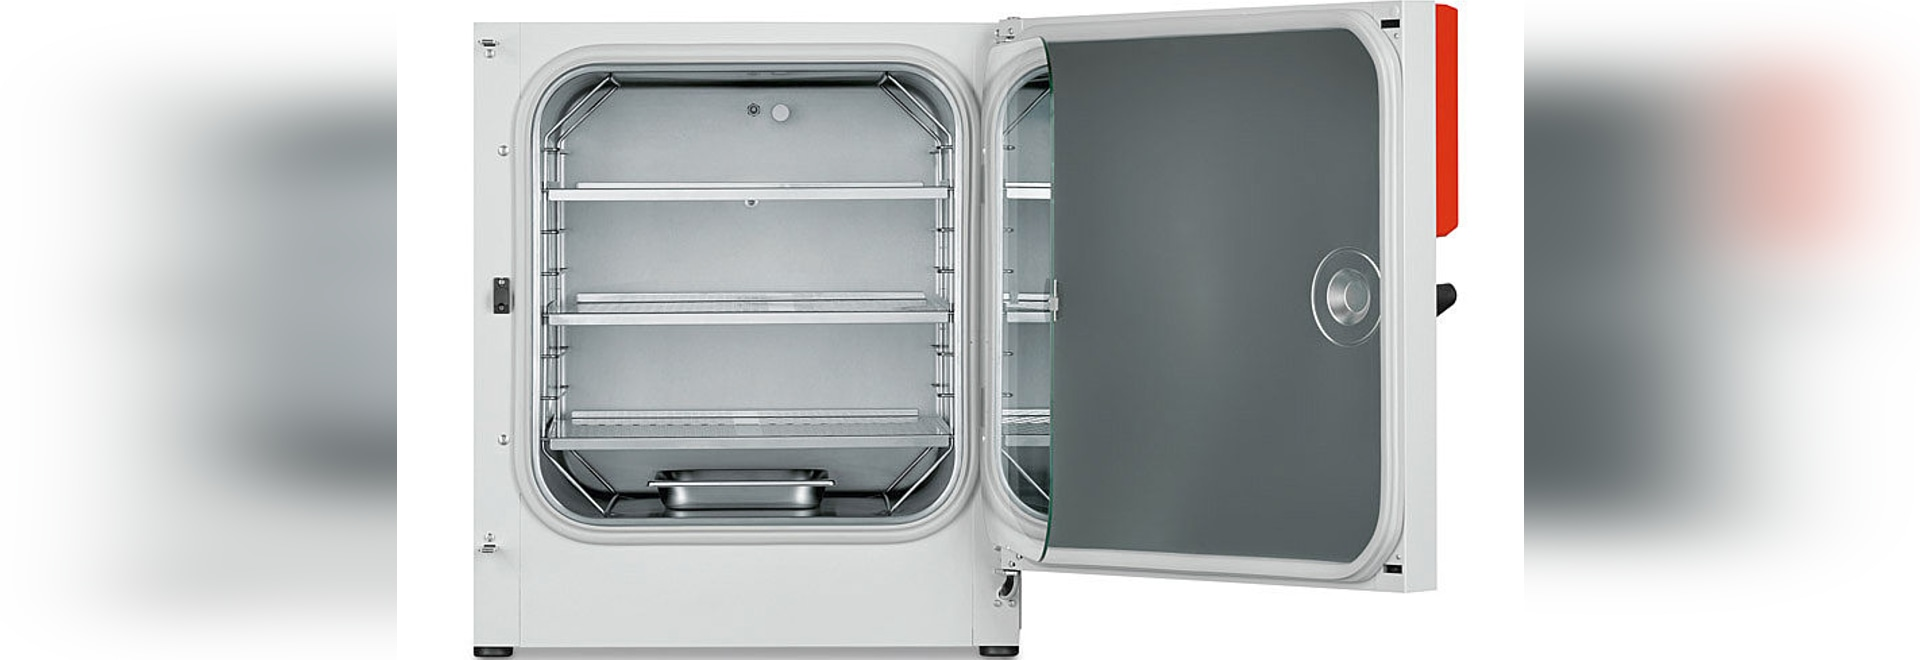 The new C 170 CO2 incubator - with 170 liters of interior volume